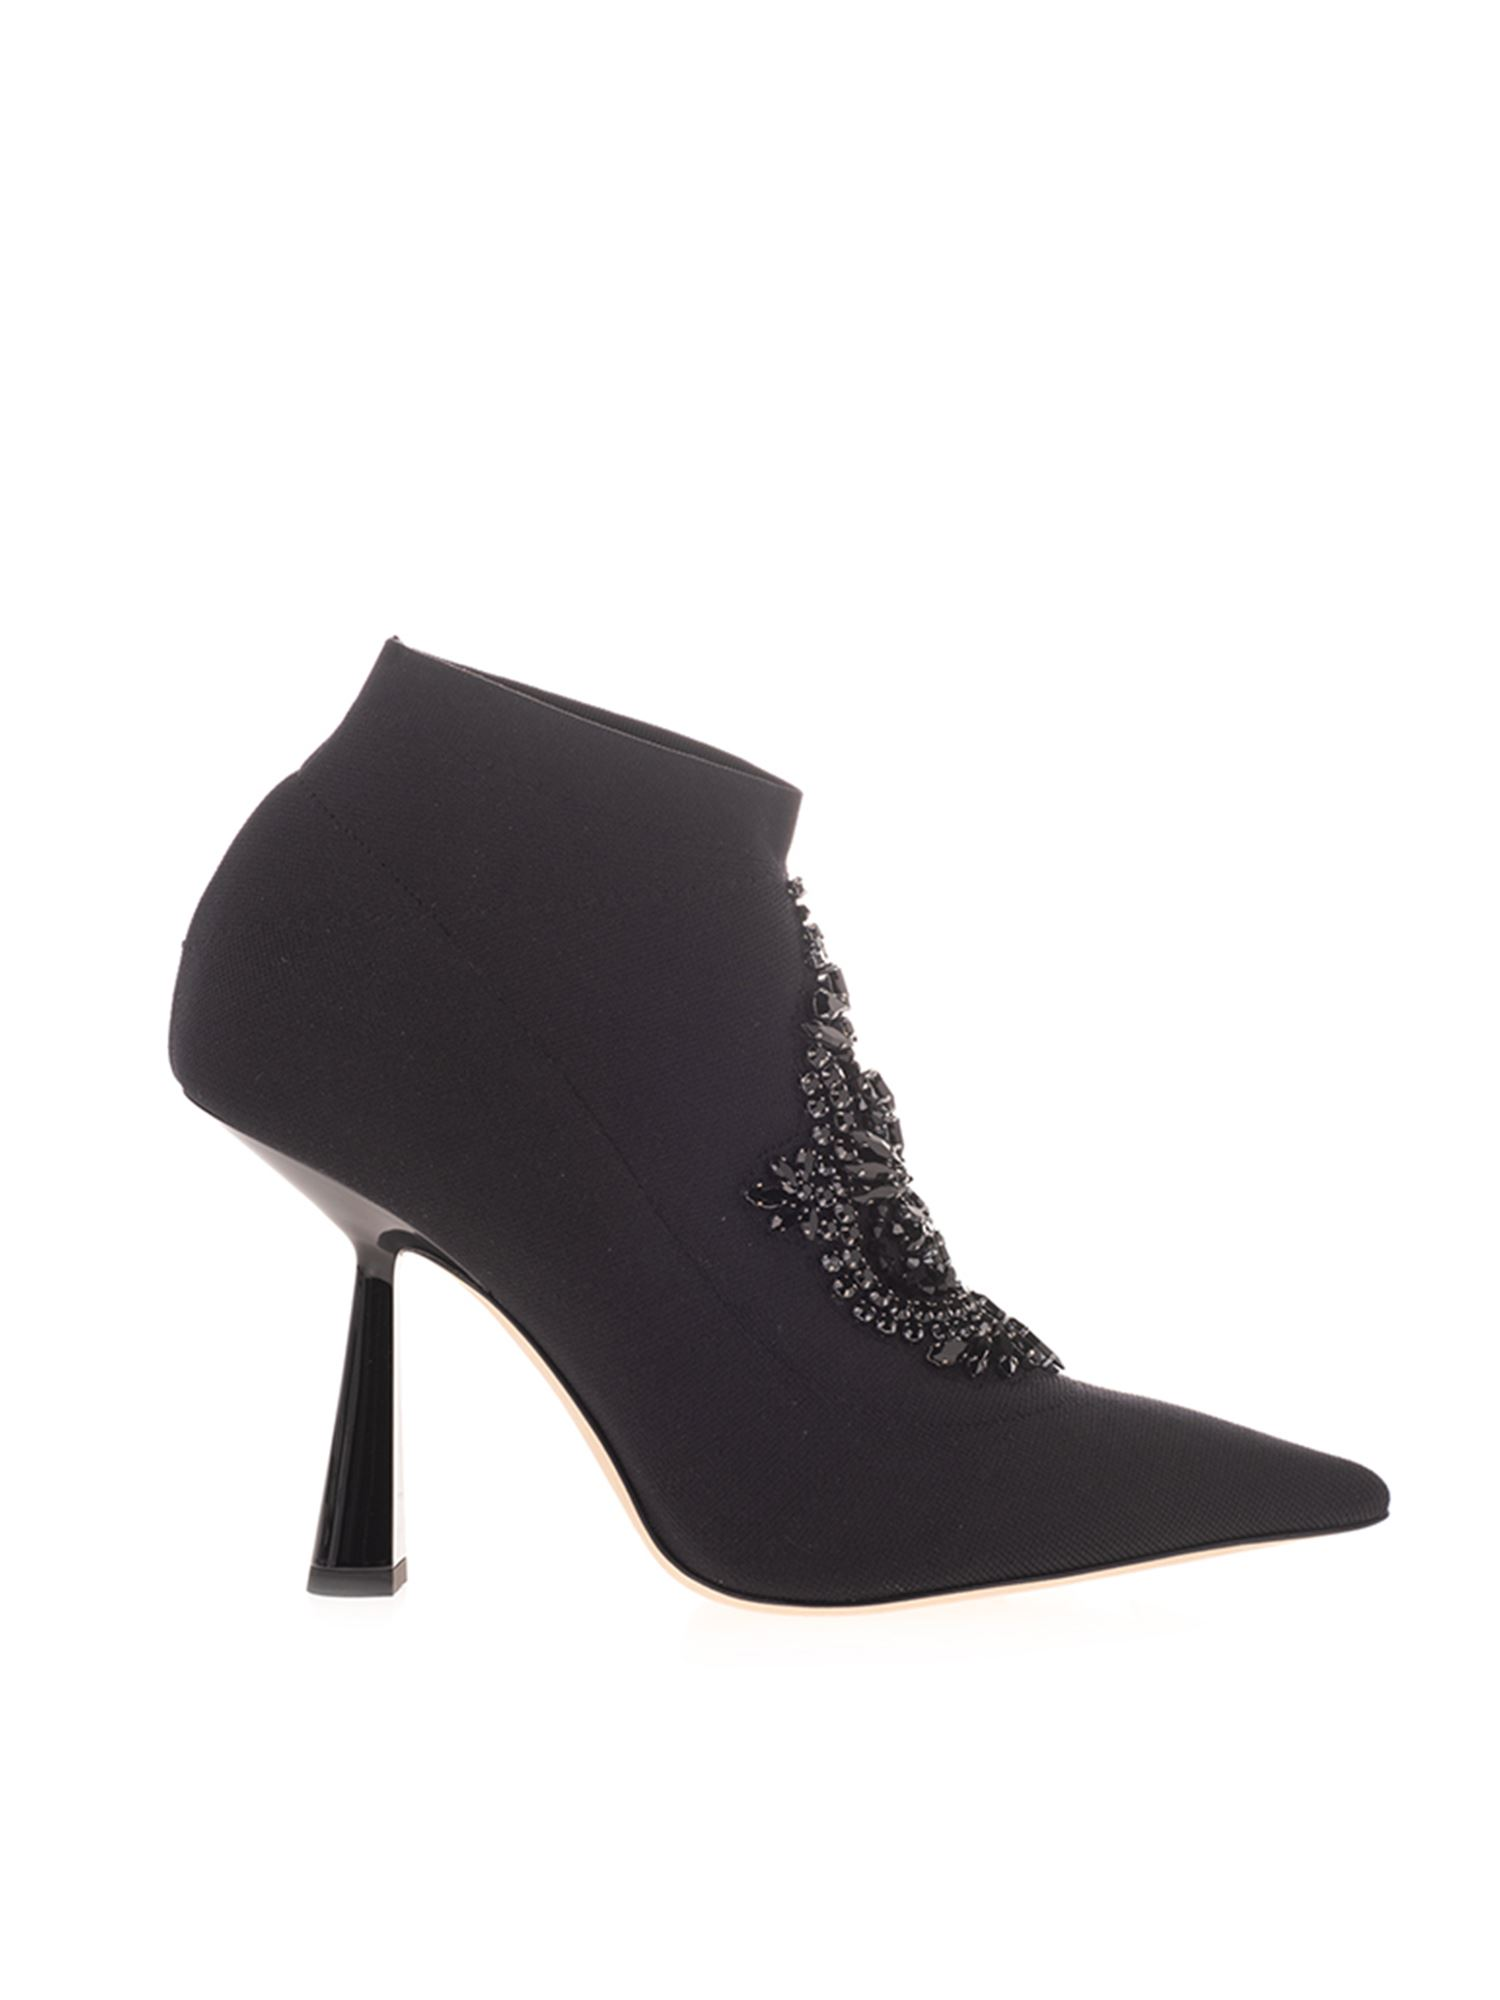 Jimmy Choo Ankle highs SABER 100 ANKLE BOOTS IN BLACK